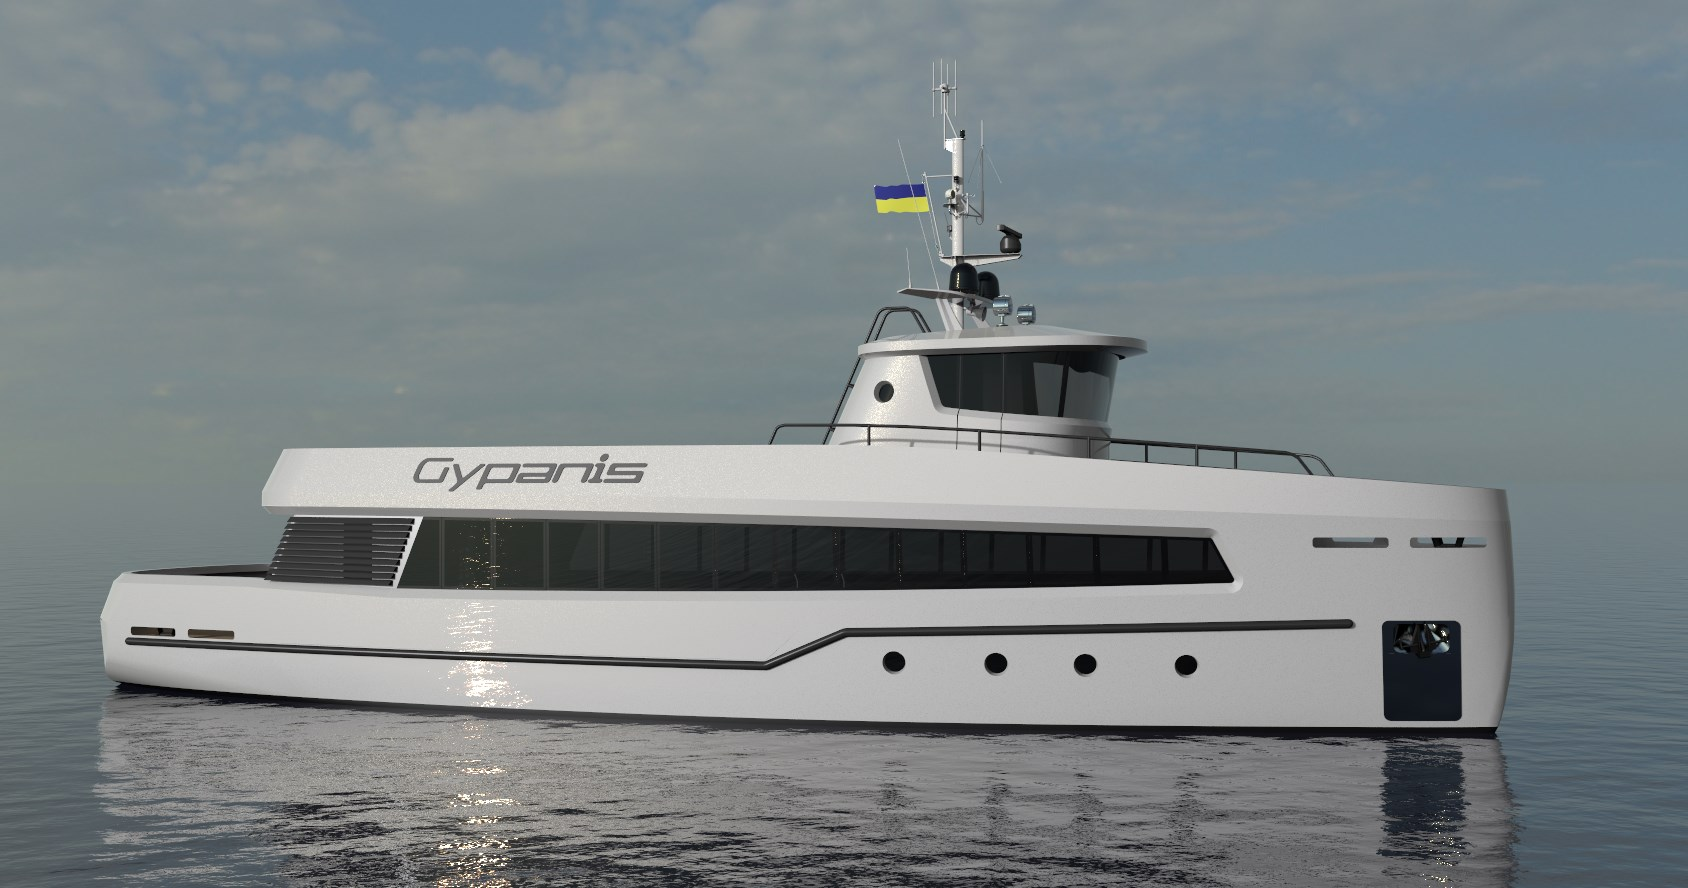 Passenger ship PS GYPANIS